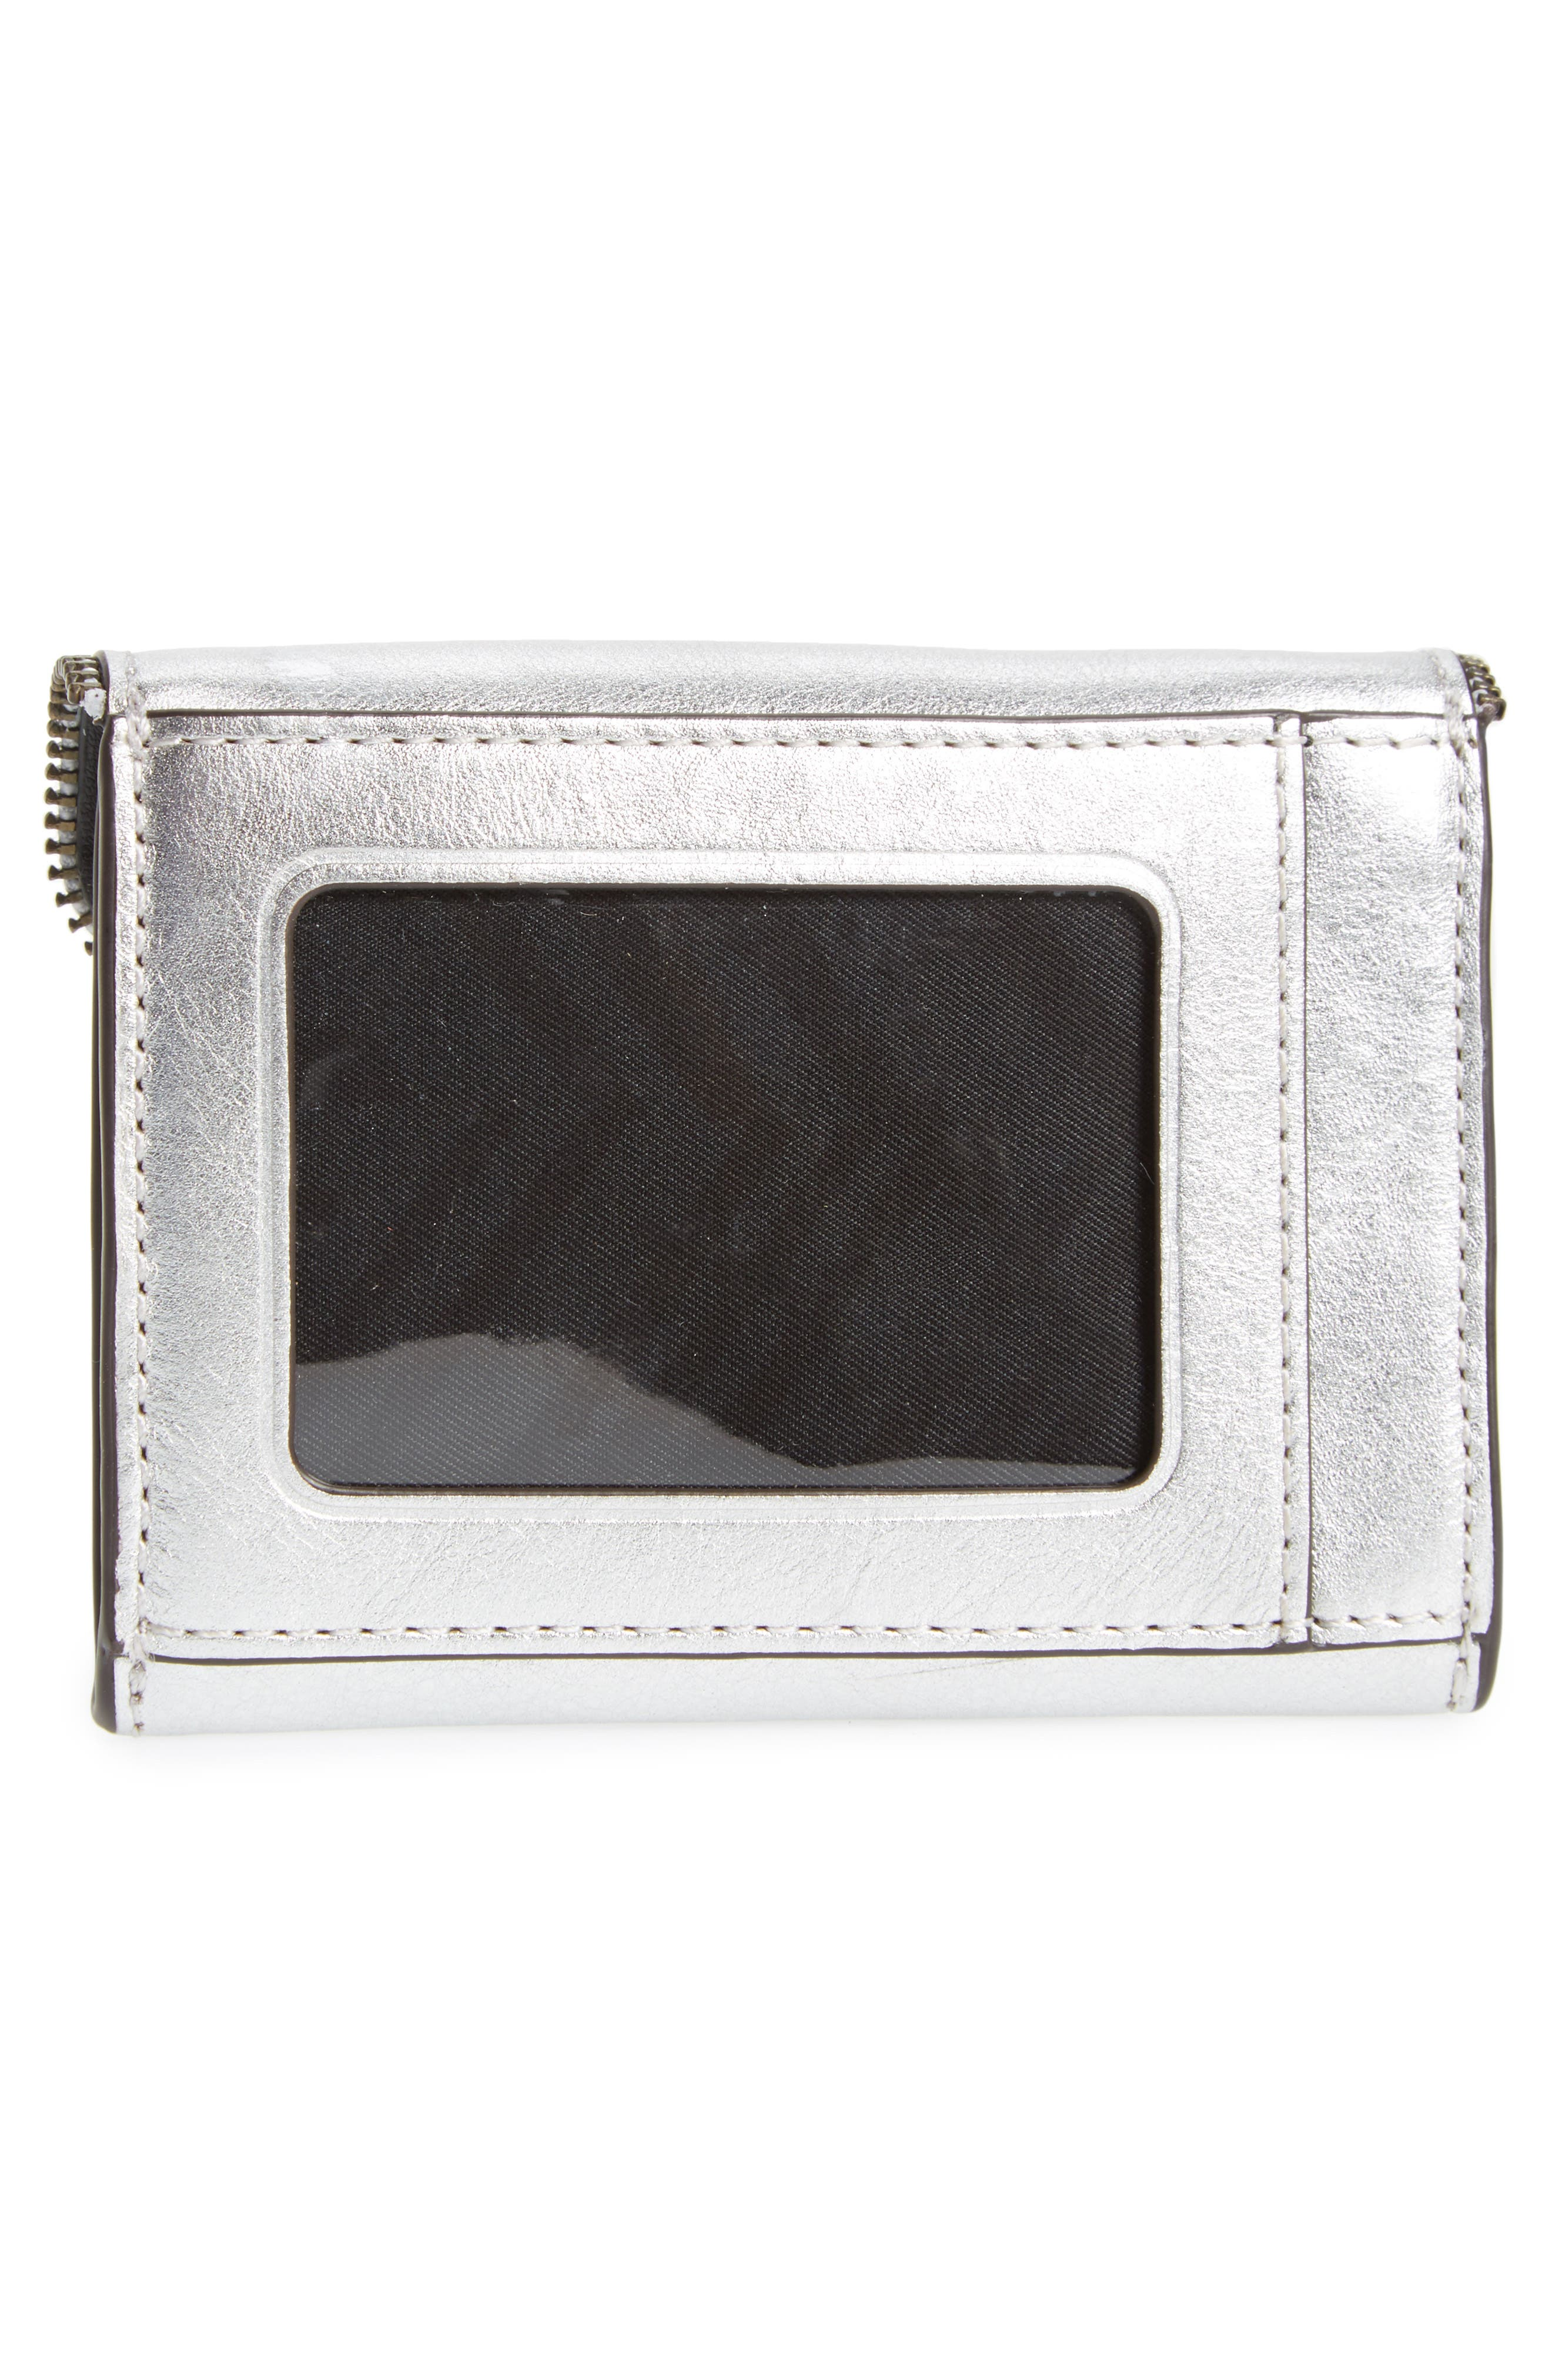 Molly Metro Metallic Leather Wallet,                             Alternate thumbnail 4, color,                             040